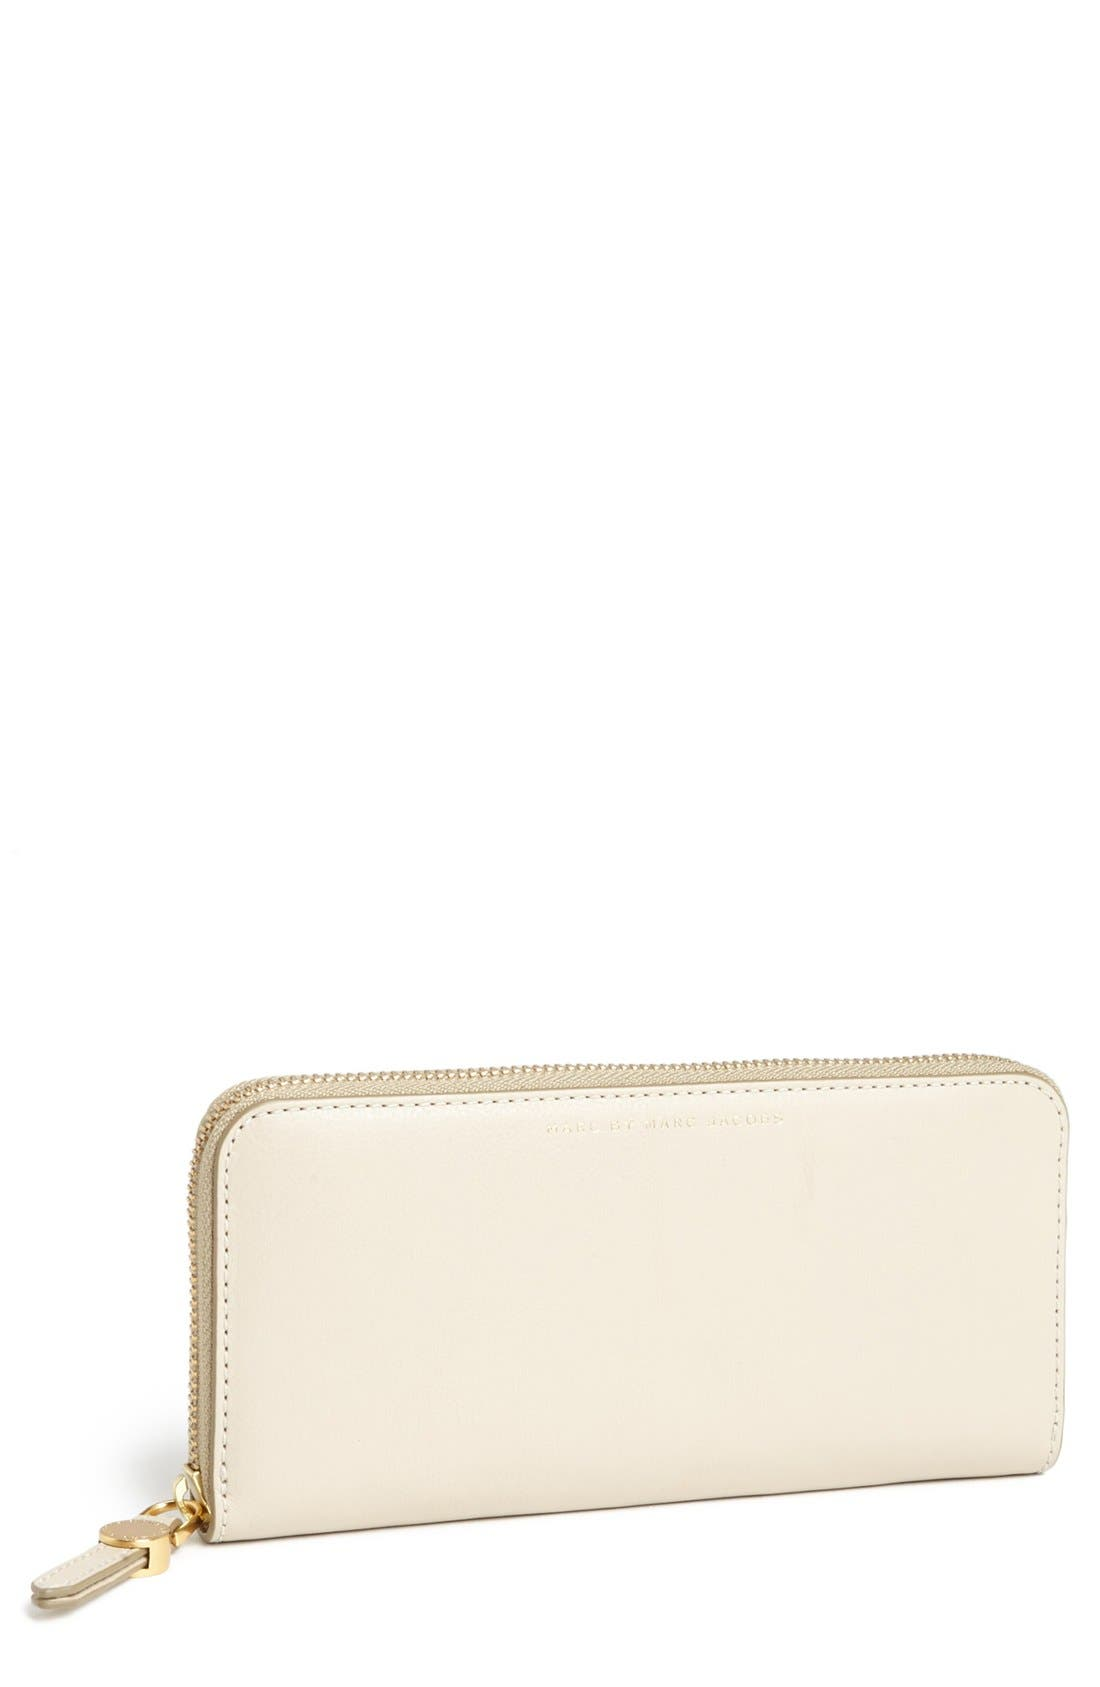 Alternate Image 1 Selected - MARC BY MARC JACOBS 'Globetrotter' Slim Zip Around Wallet